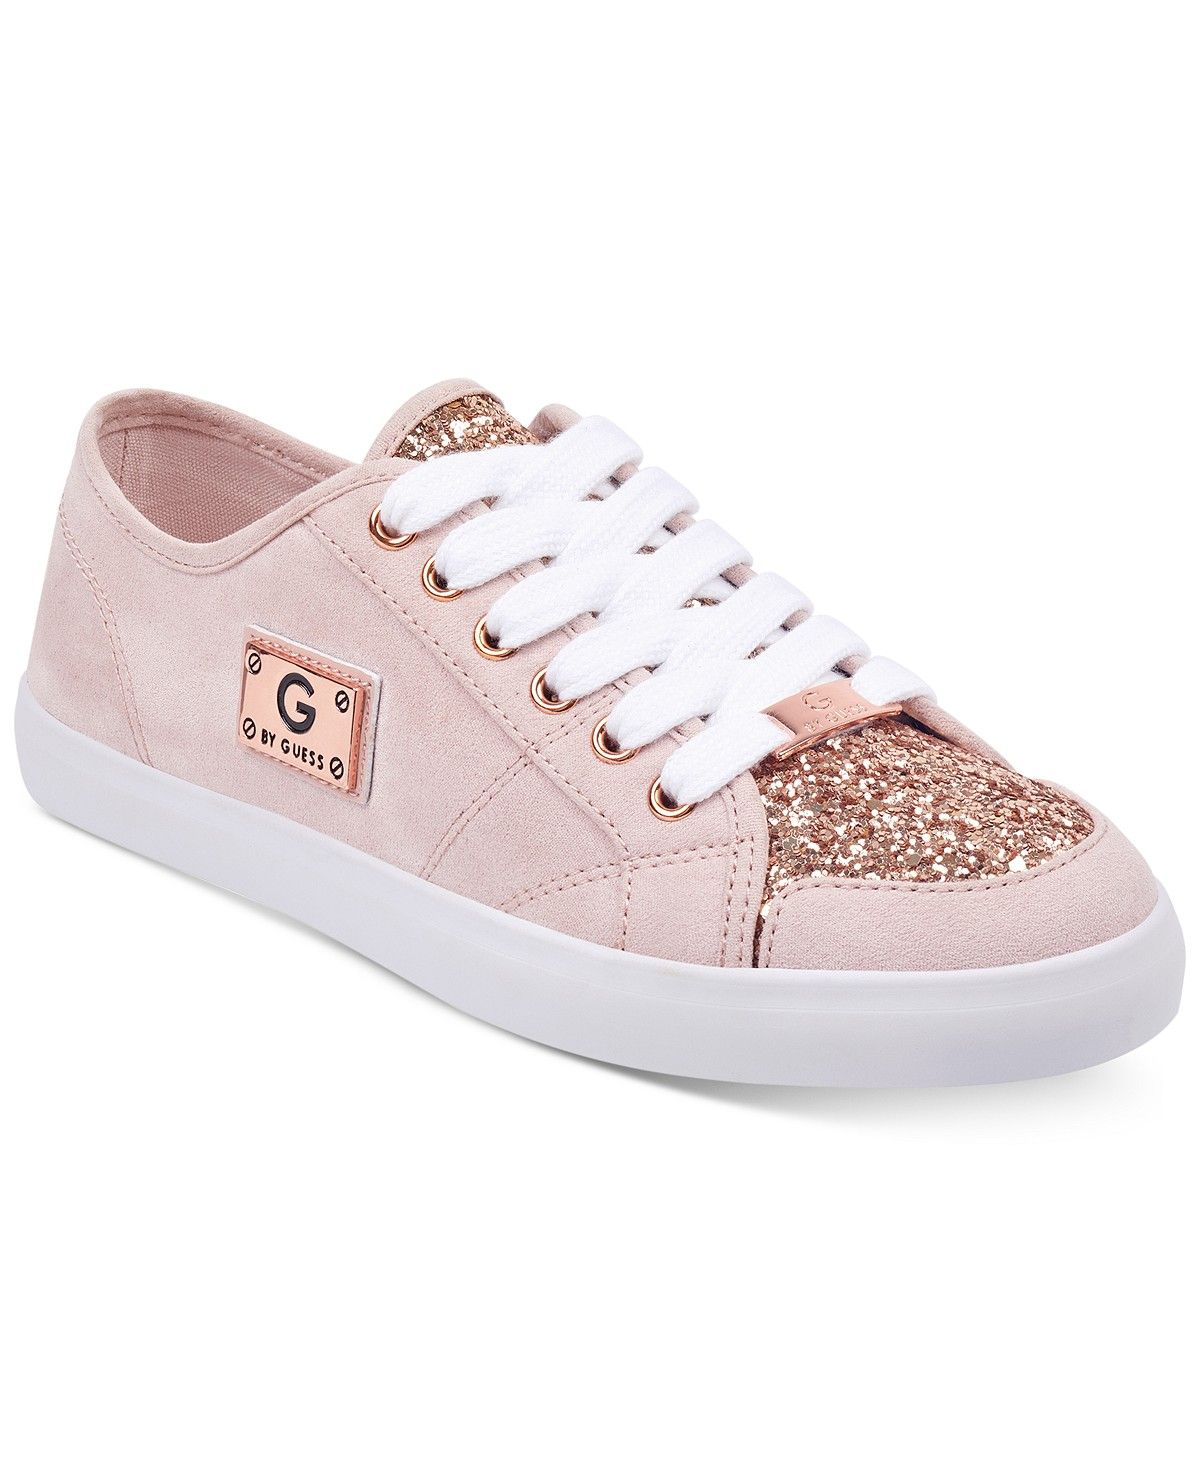 8e3884b0f106 G by GUESS Matrix Glitter Lace Up Sneakers available in pink, light blue,  black and white. For only $59, you can add a little sparkle to your spring  ...